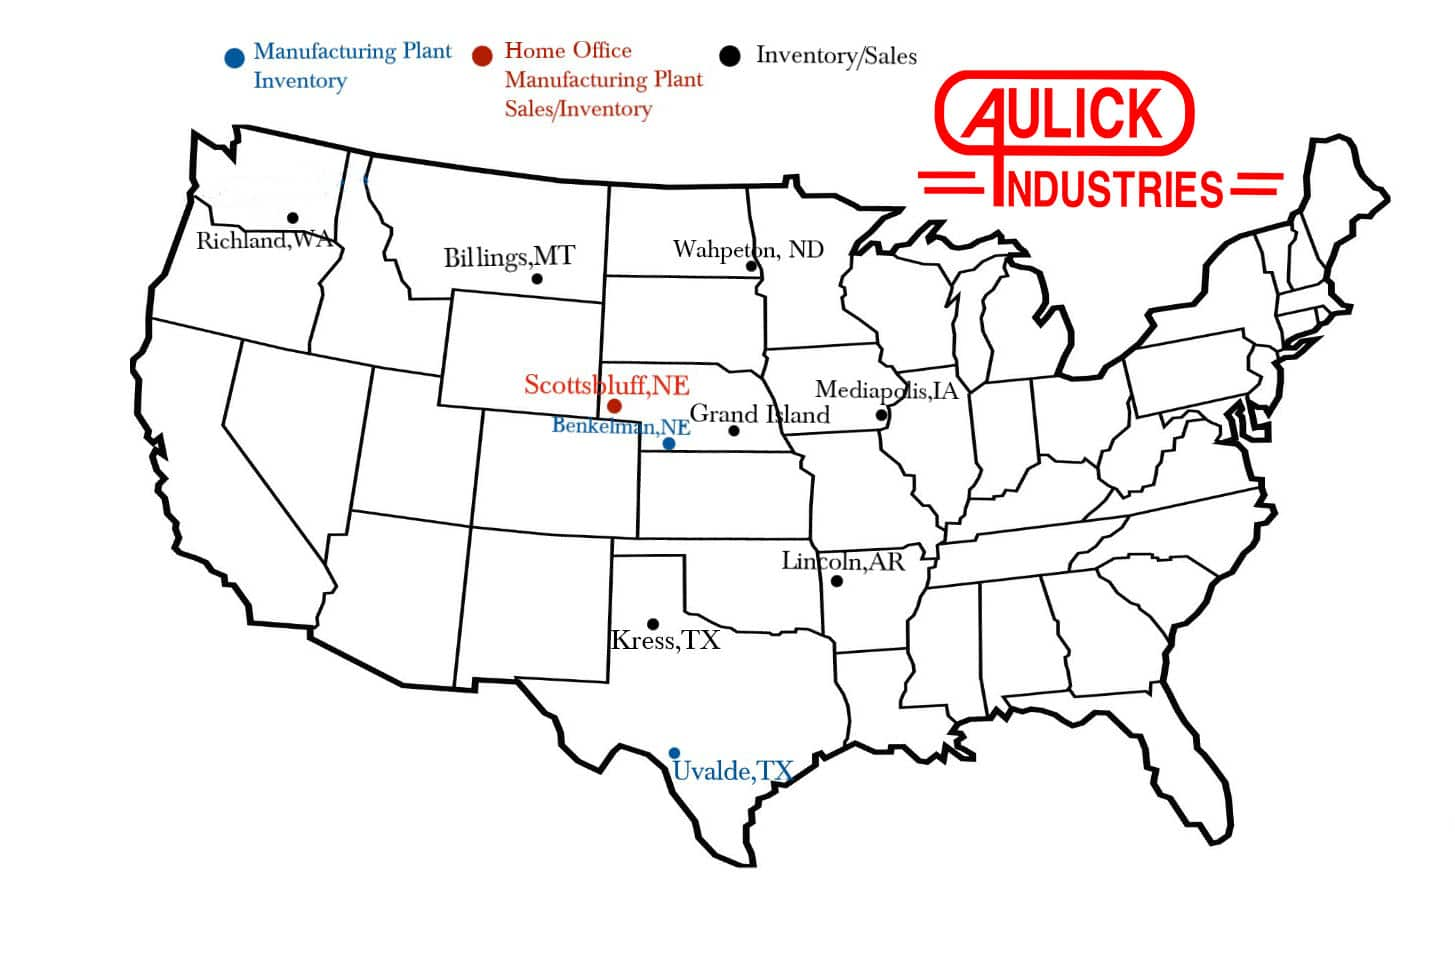 Aulick Industries Locations